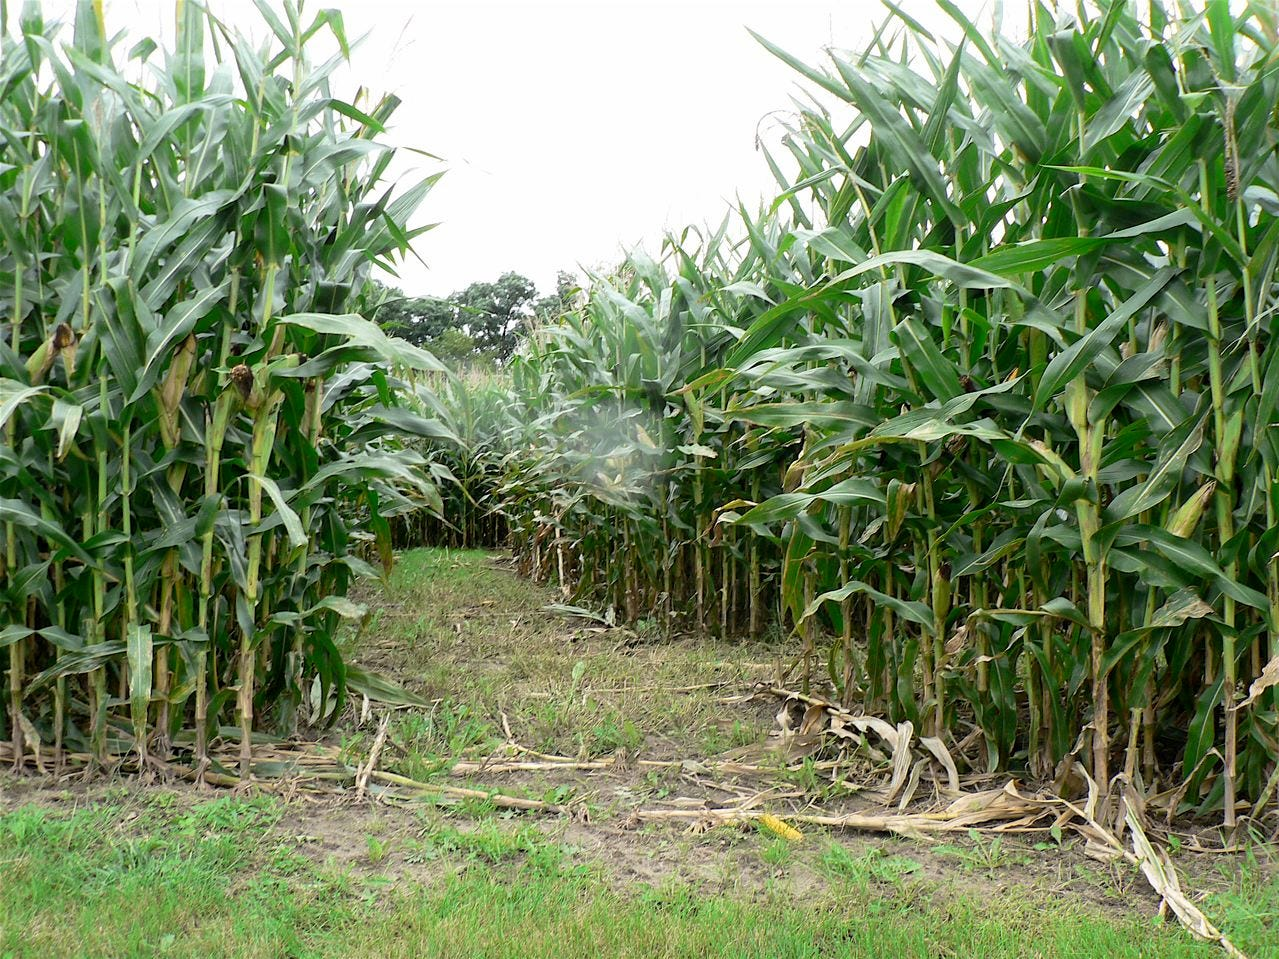 The corn is tall, you might get lost in the maze.